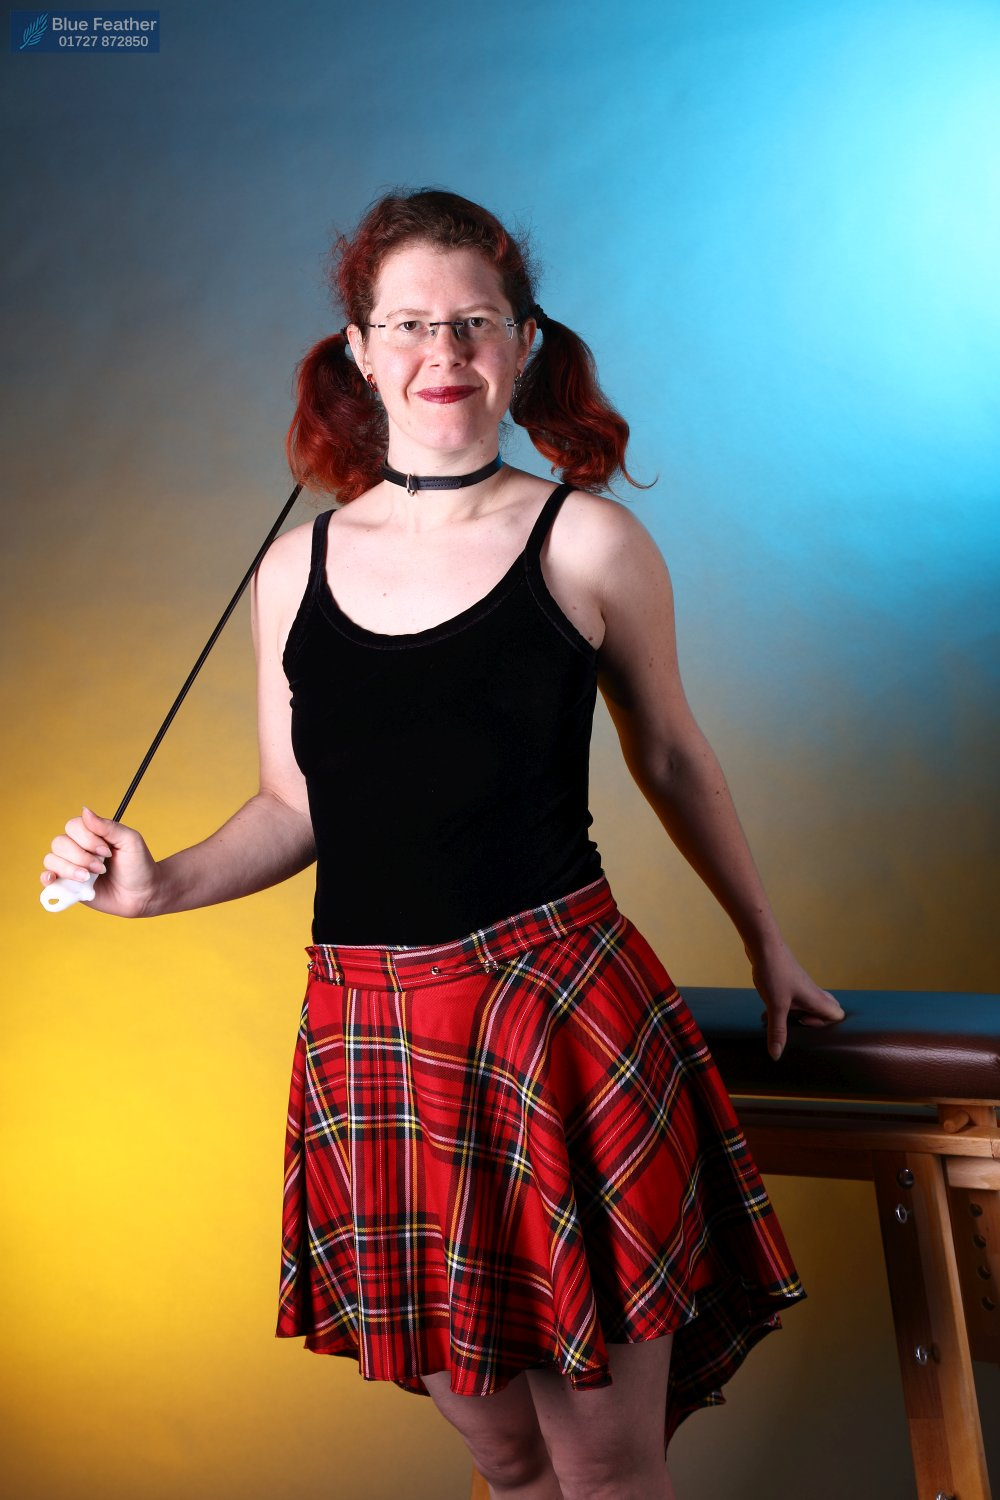 Caning tutorial ONLINE